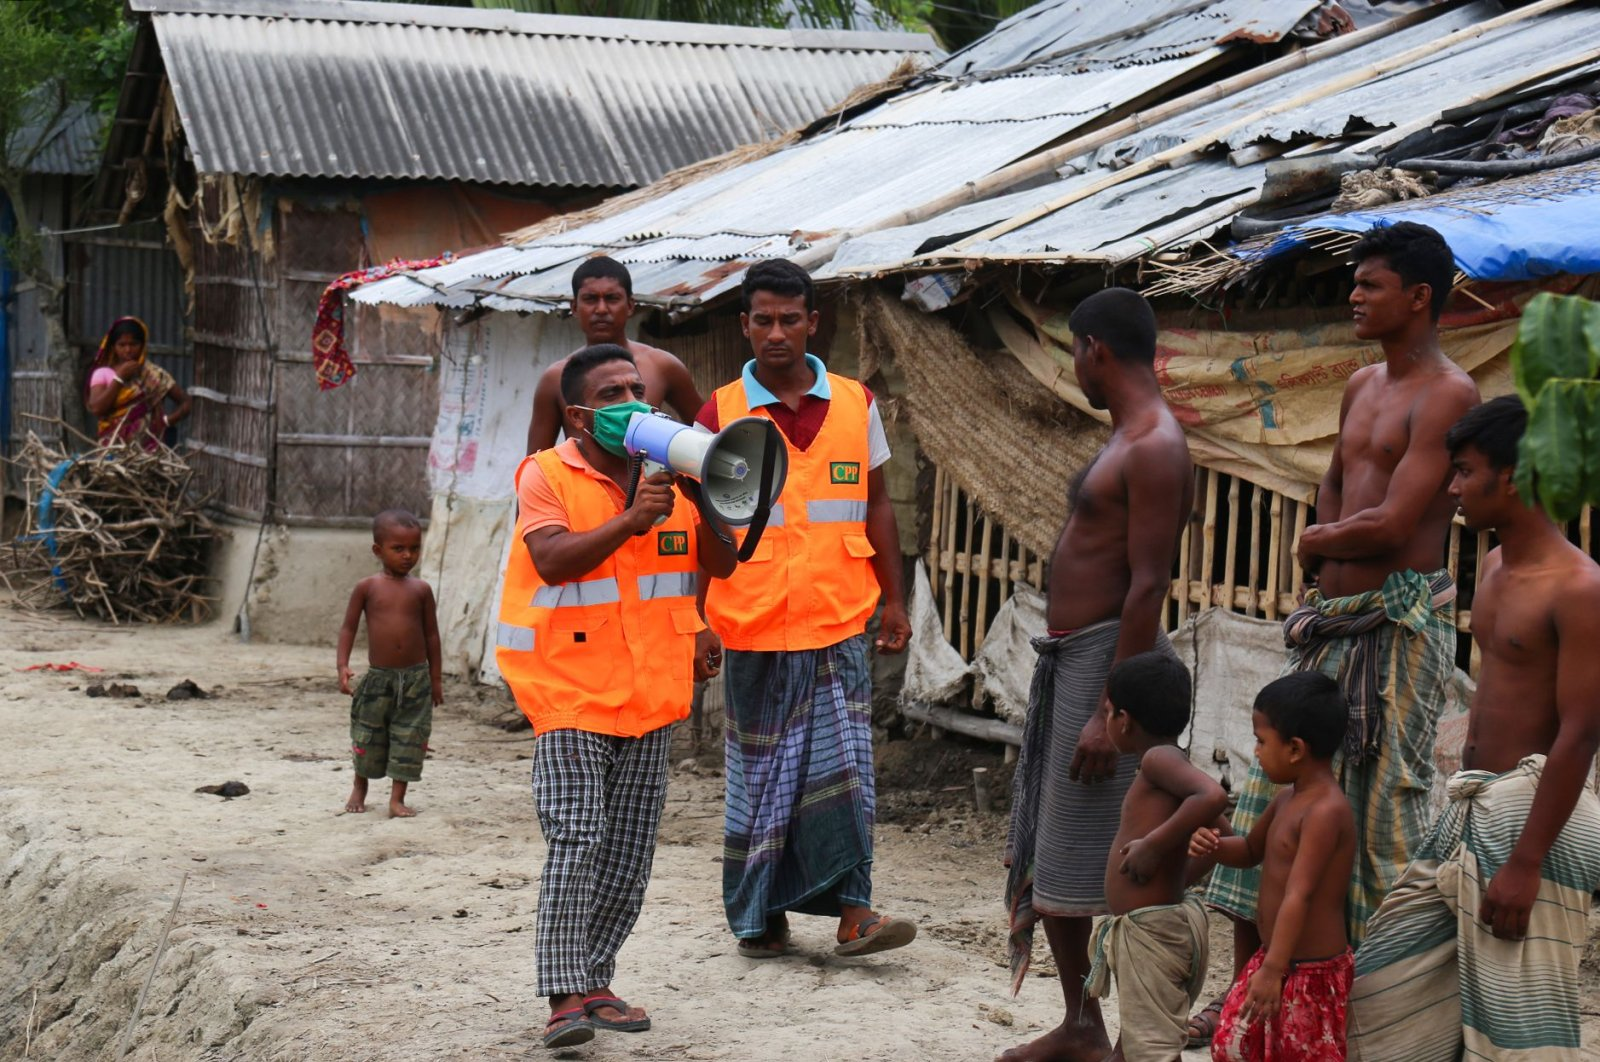 A Cyclone Preparedness Programme (CPP) volunteer uses a megaphone to urge residents to evacuate to shelters ahead of the expected landfall of Cyclone Amphan in Khulna, Bangladesh, May 19, 2020. (AFP Photo)